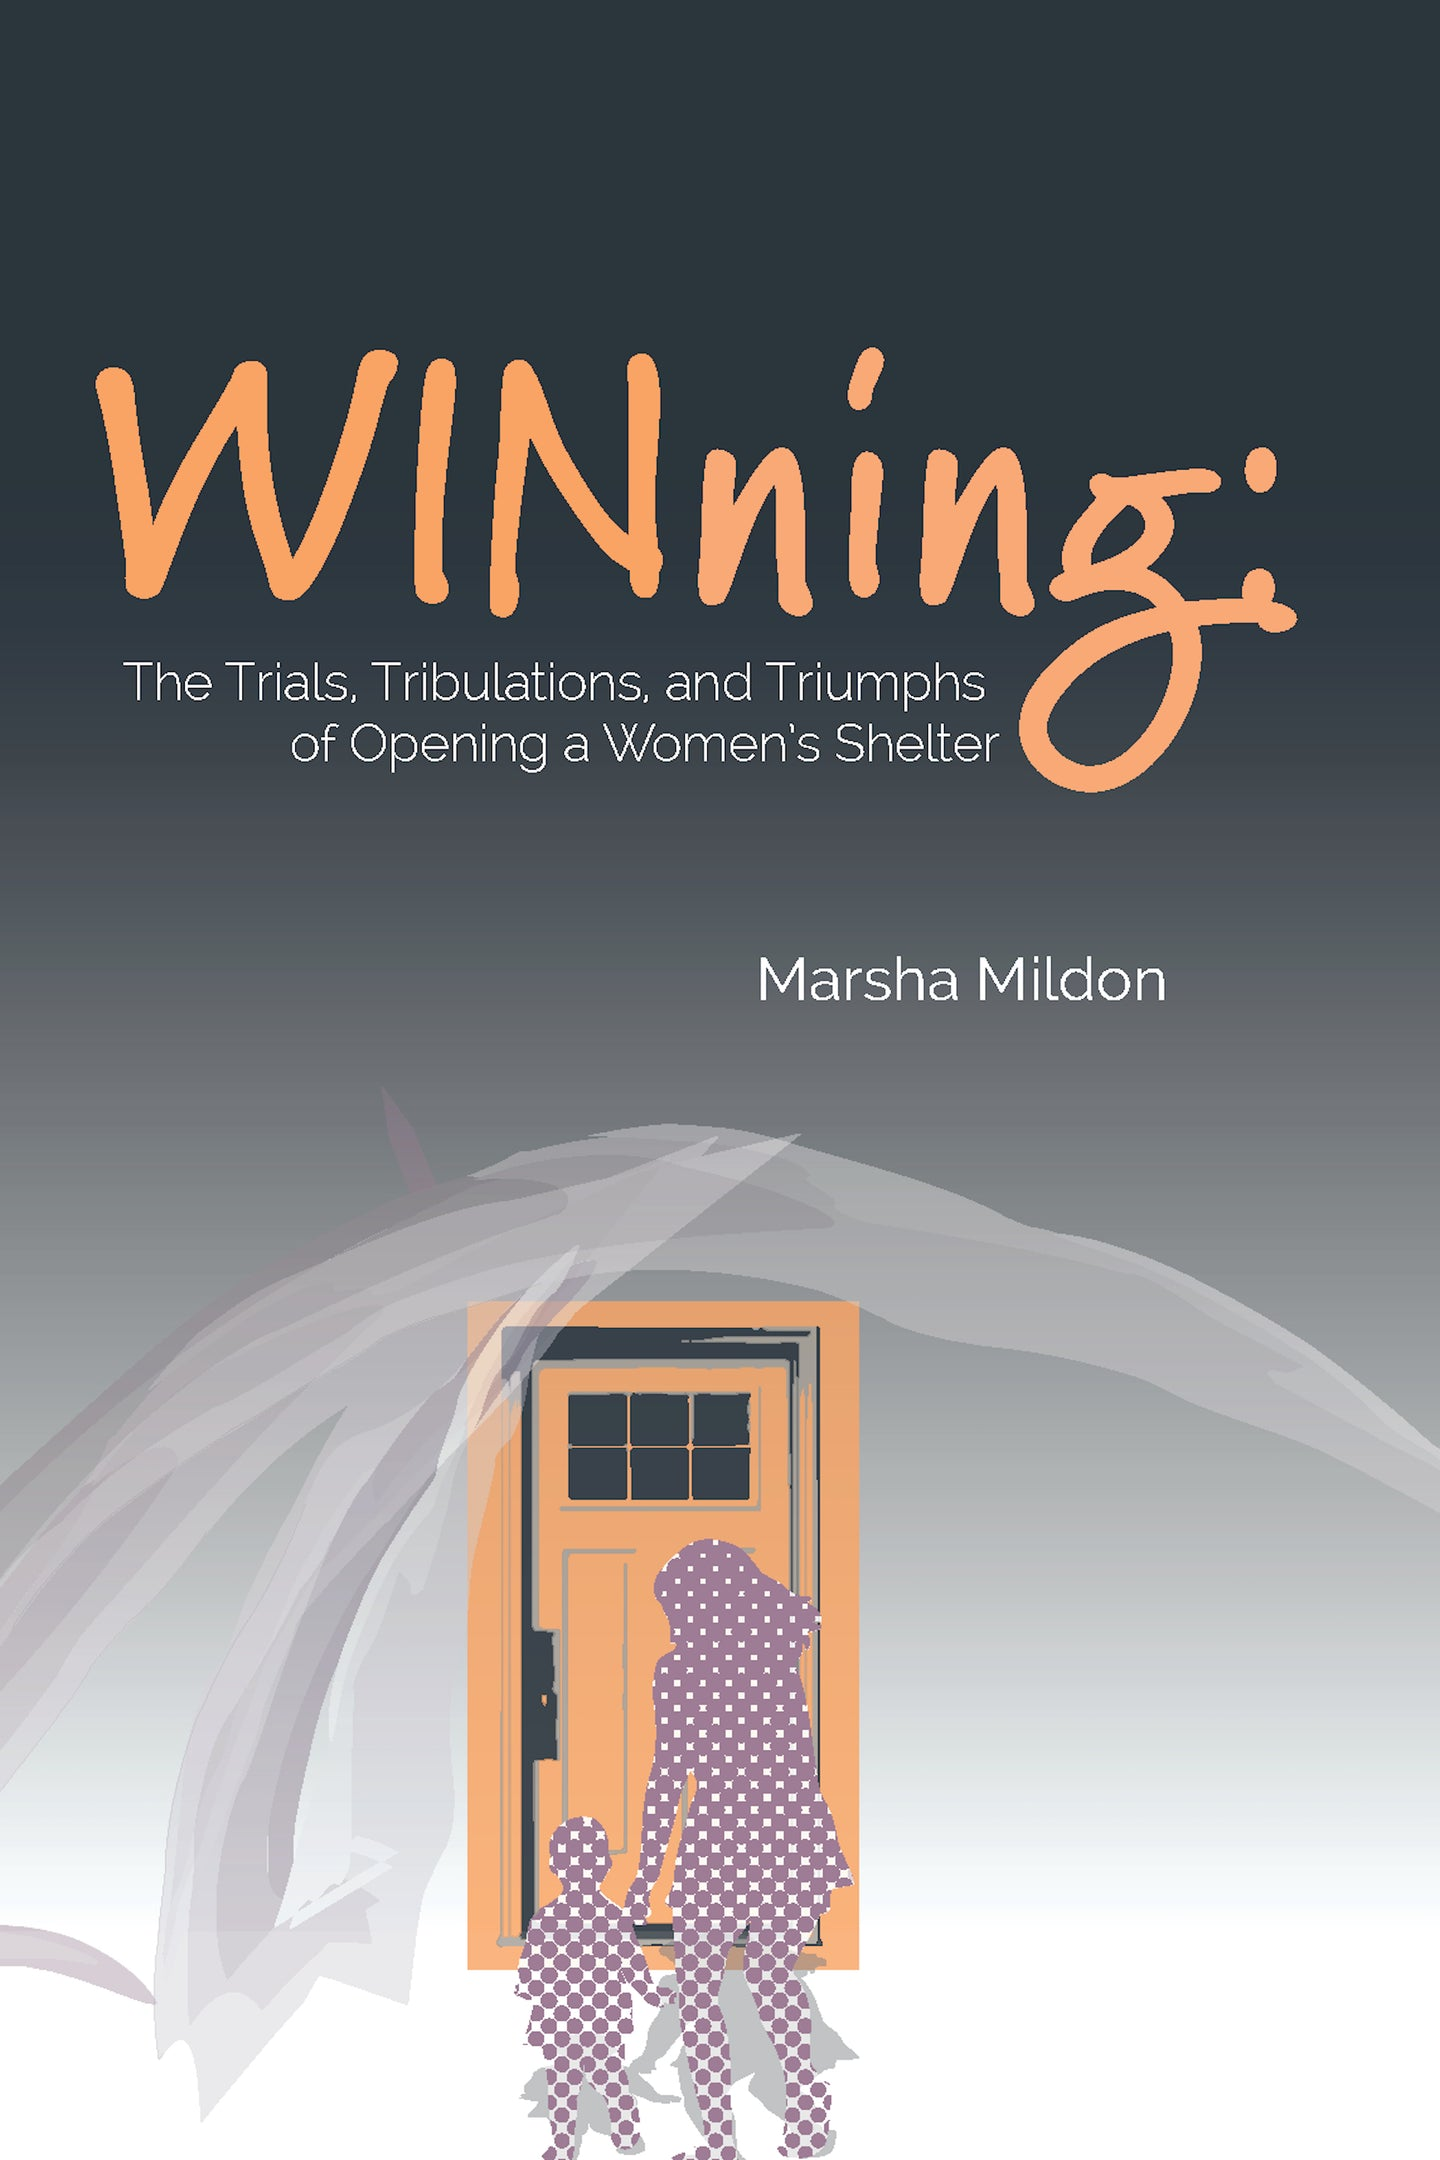 WINning: The Trials, Tribulations and Triumphs of Opening a Women's Shelter